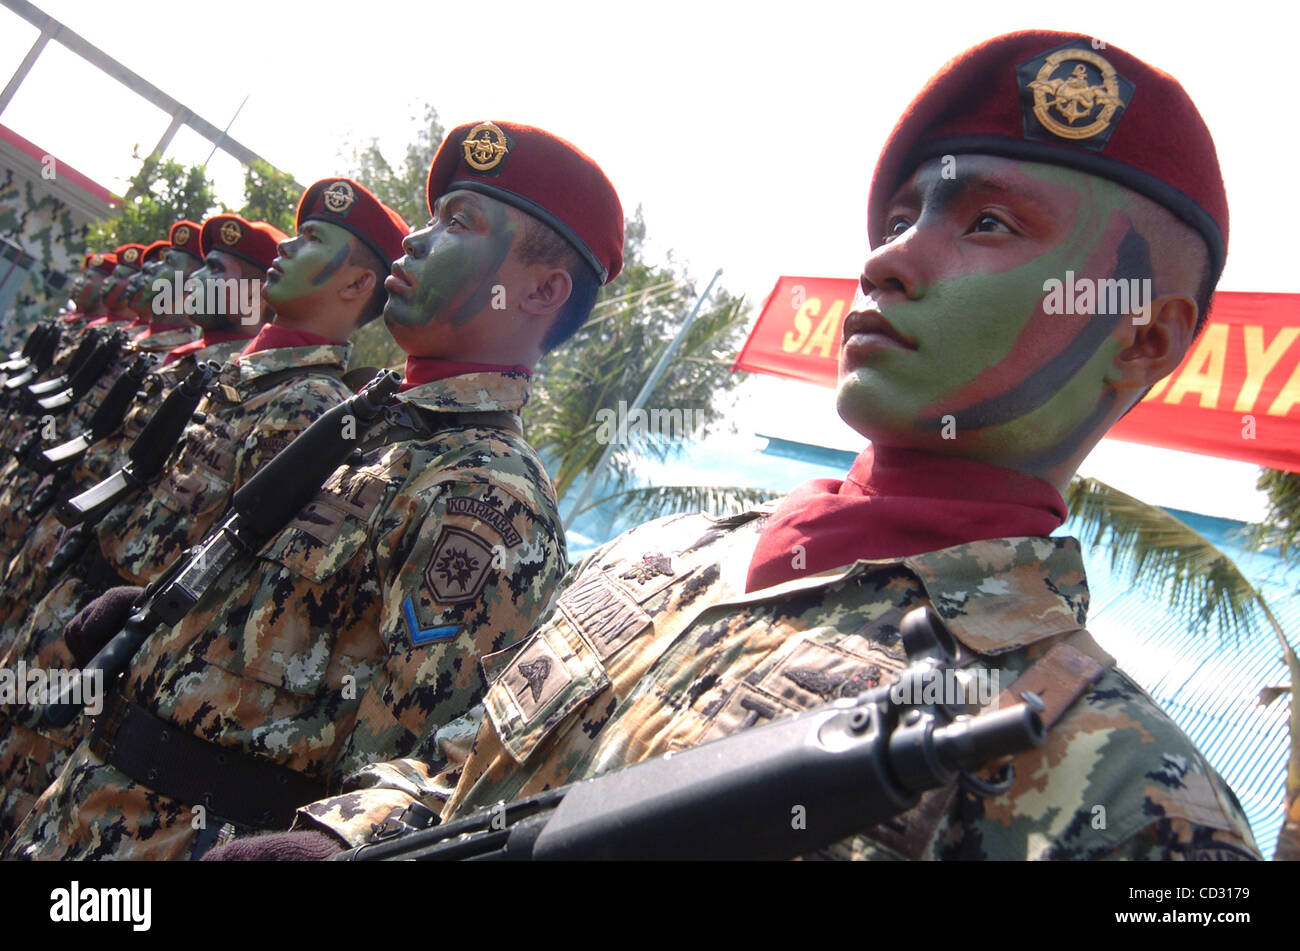 naval special warfare personel or kopaska stand in a formation